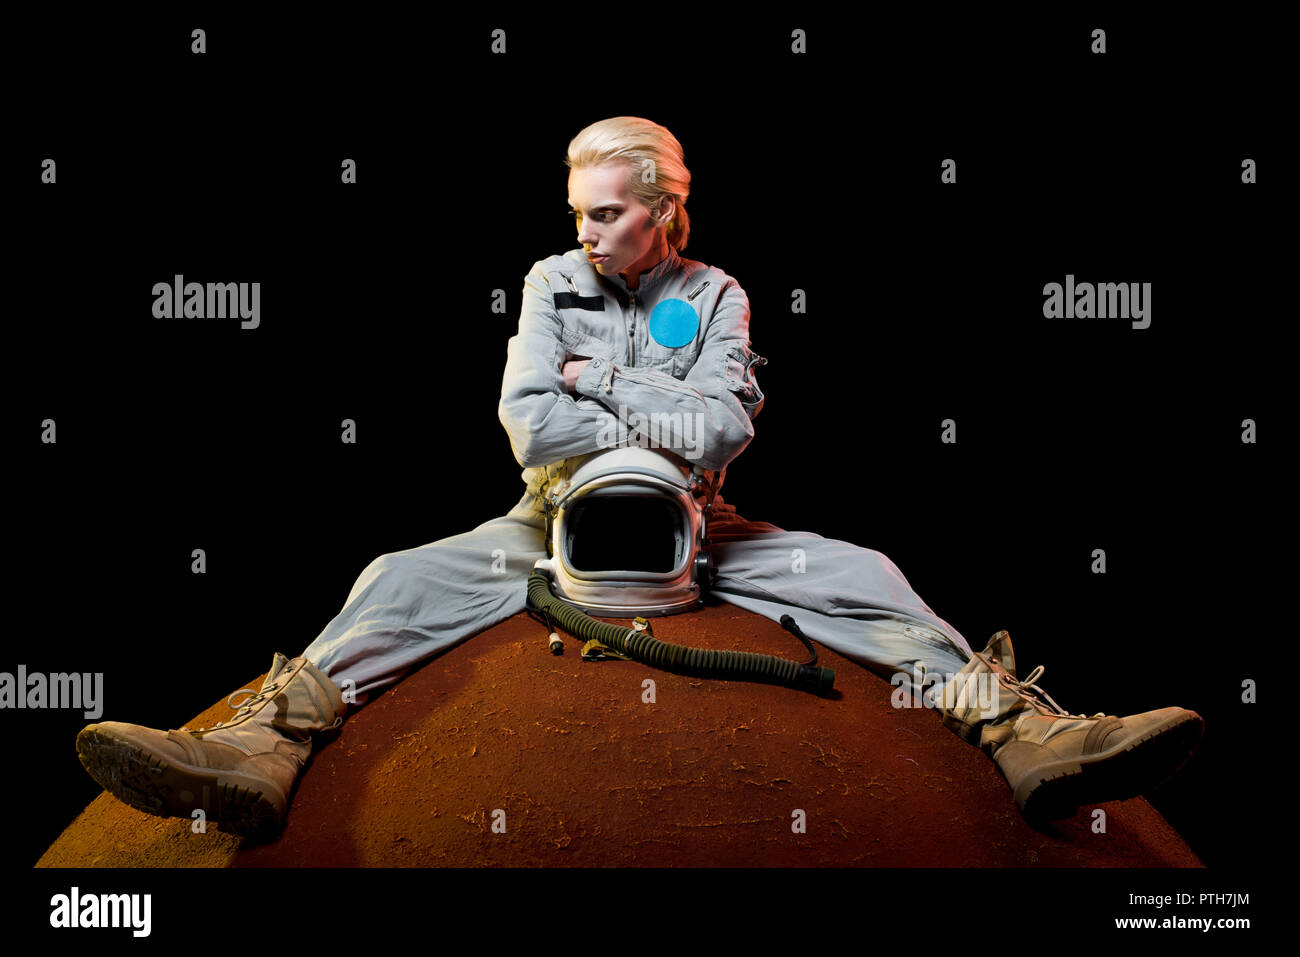 beautiful astronaut in spacesuit with helmet sitting on planet - Stock Image